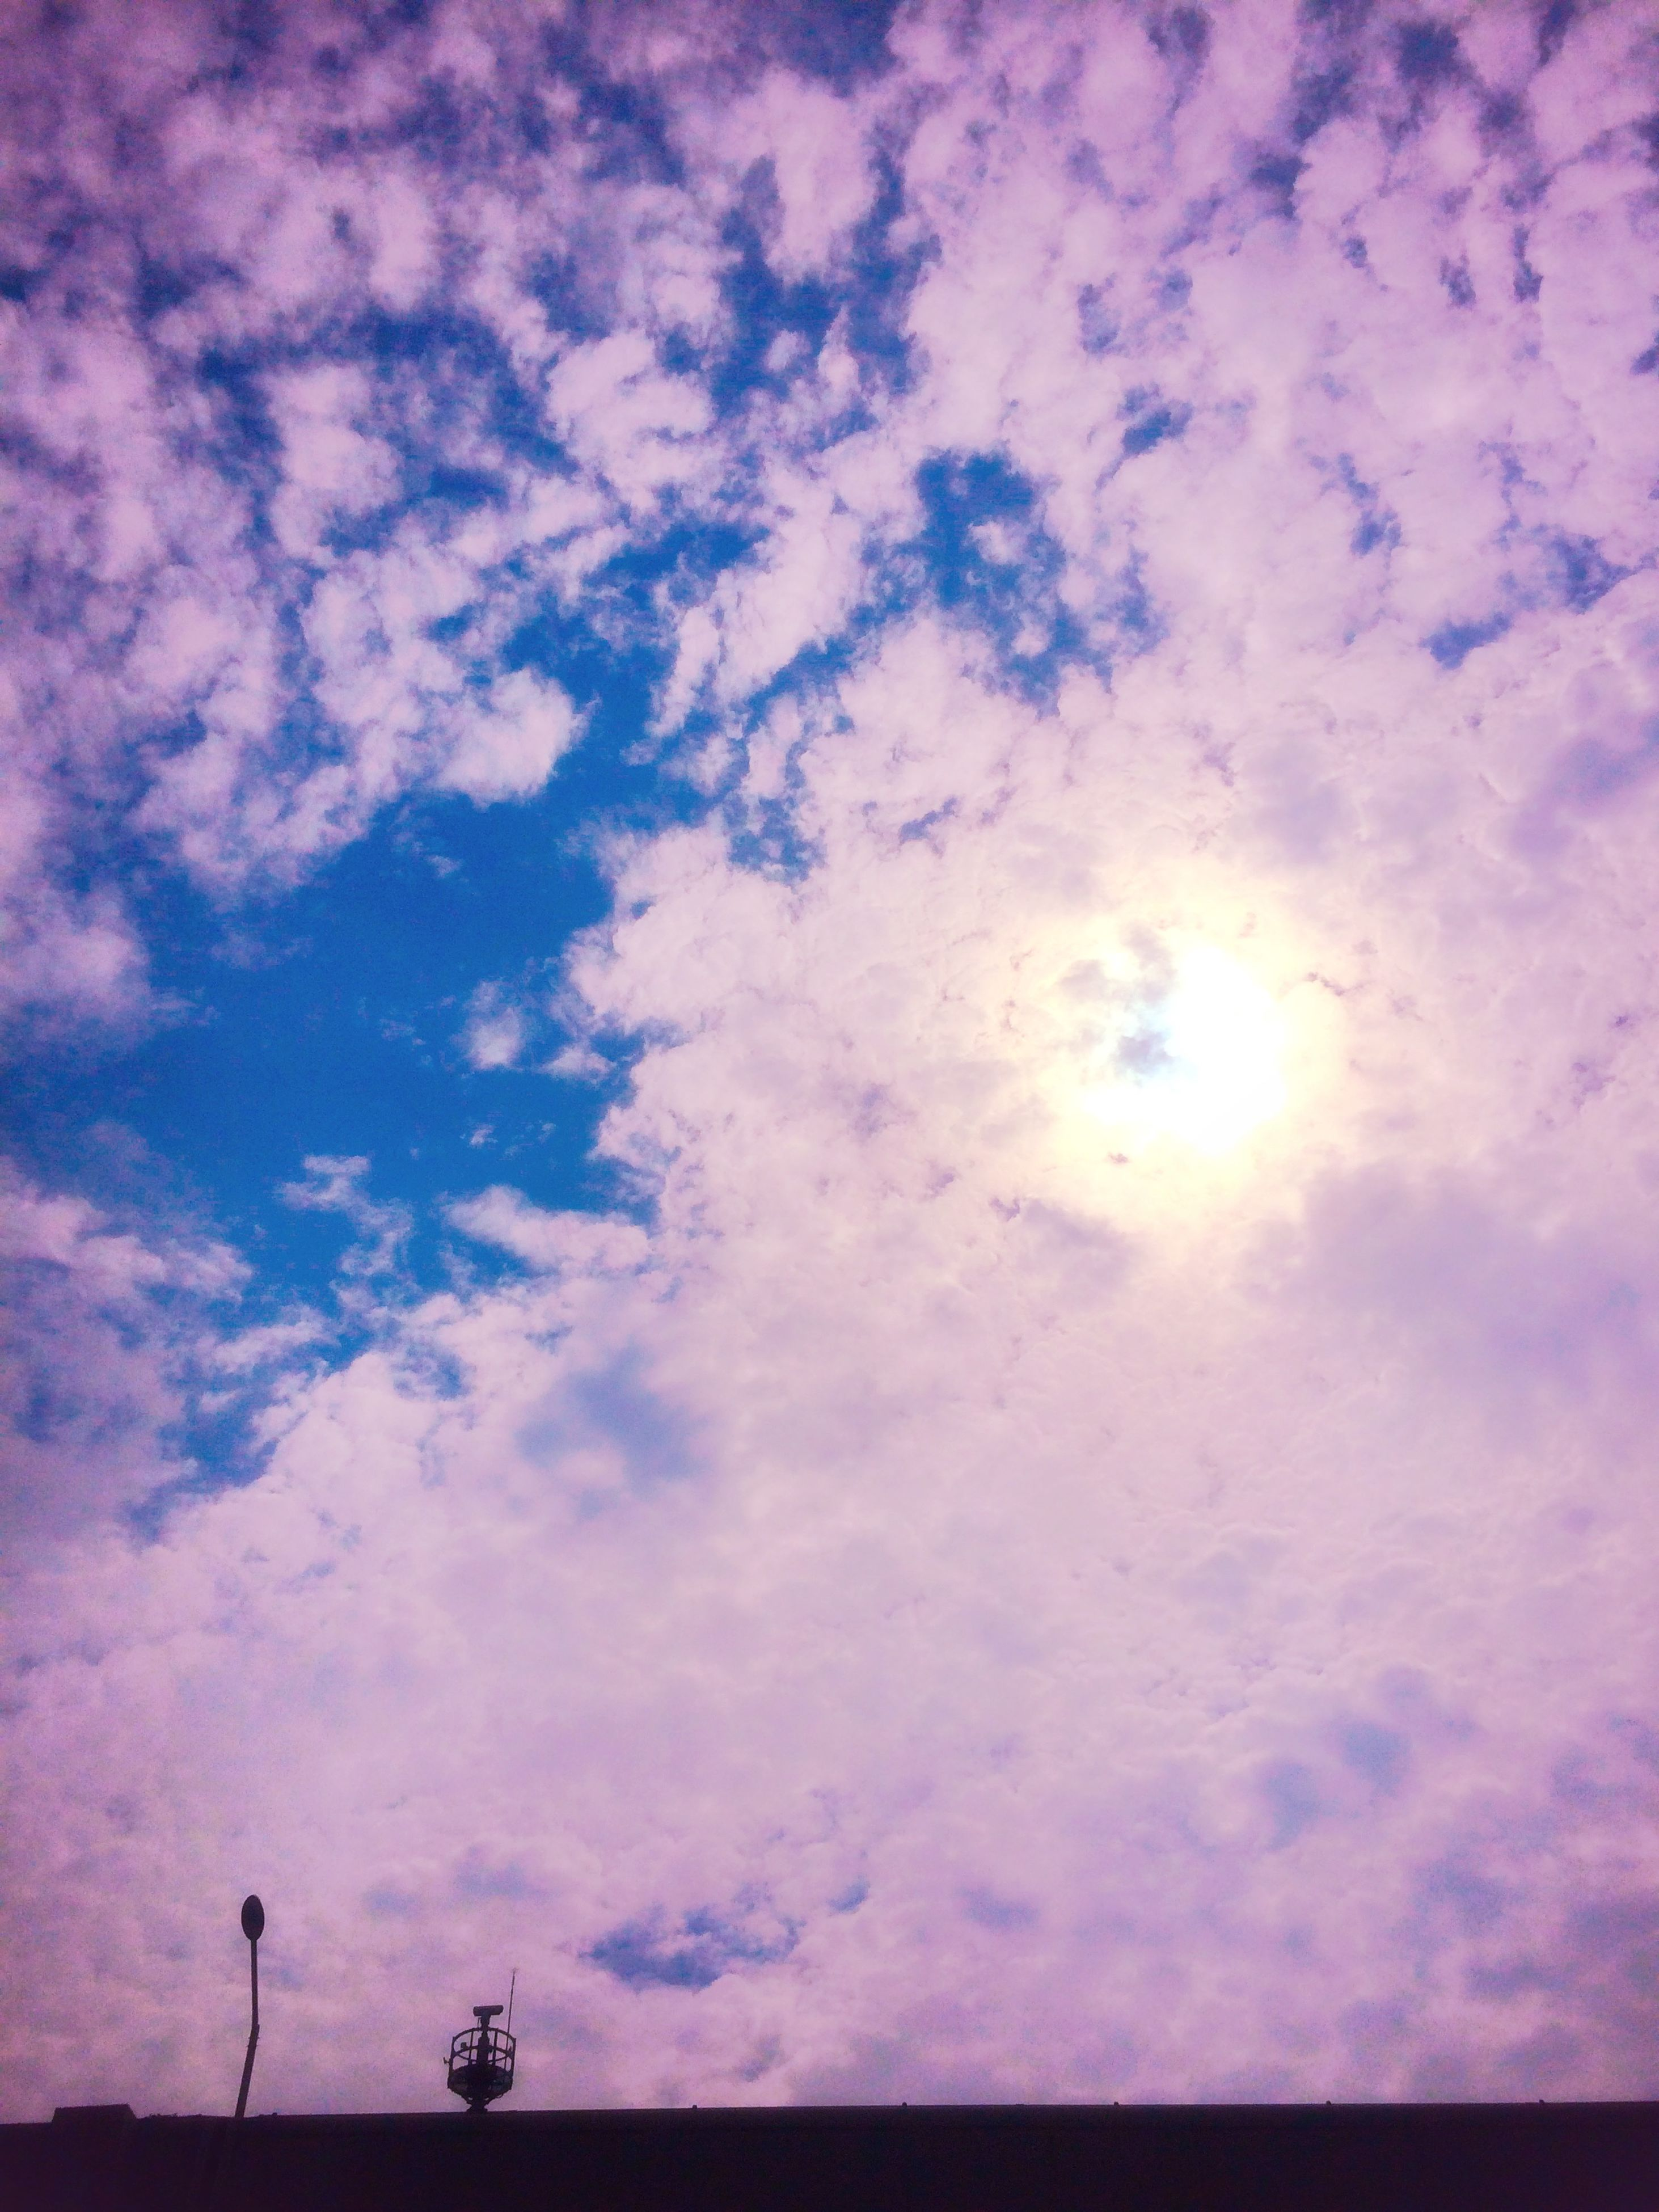 sky, silhouette, cloud - sky, low angle view, beauty in nature, tranquility, scenics, tranquil scene, nature, cloudy, sunset, cloud, sun, idyllic, sunlight, sunbeam, outdoors, cloudscape, weather, dusk